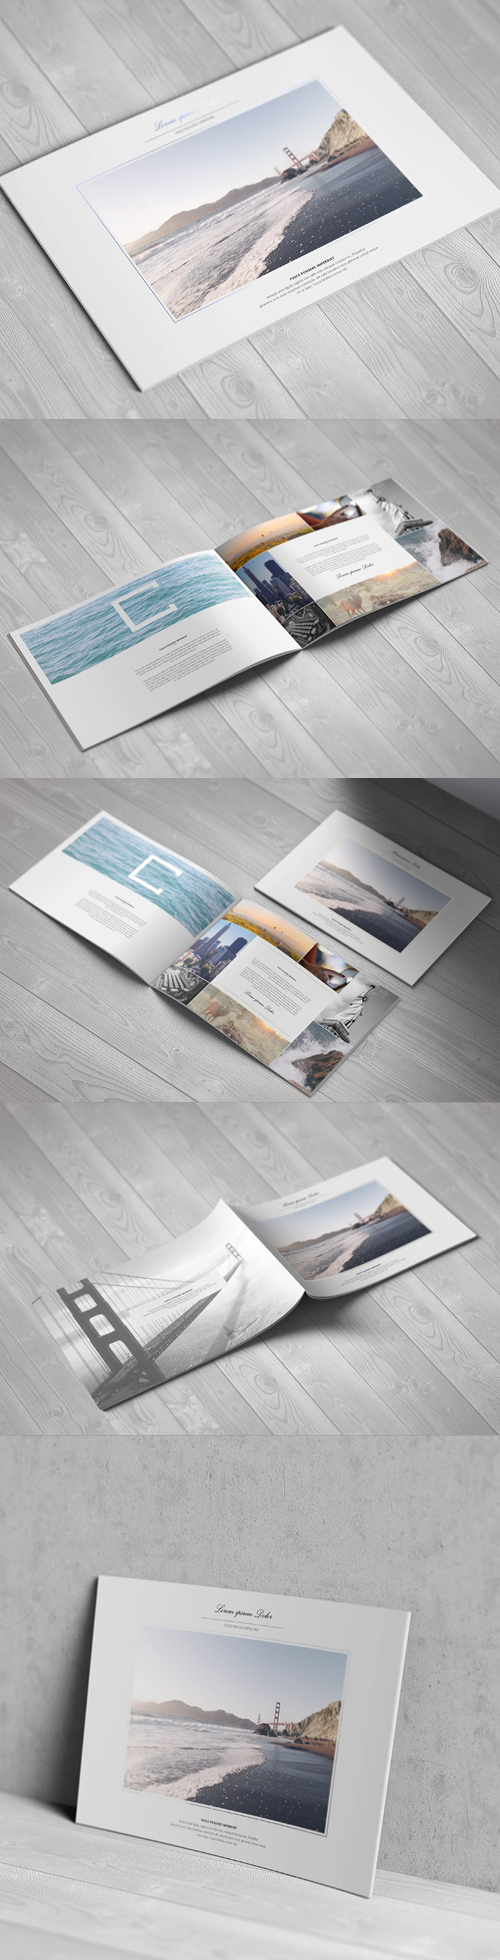 A4 Landscape Brochure Mock-Up Template